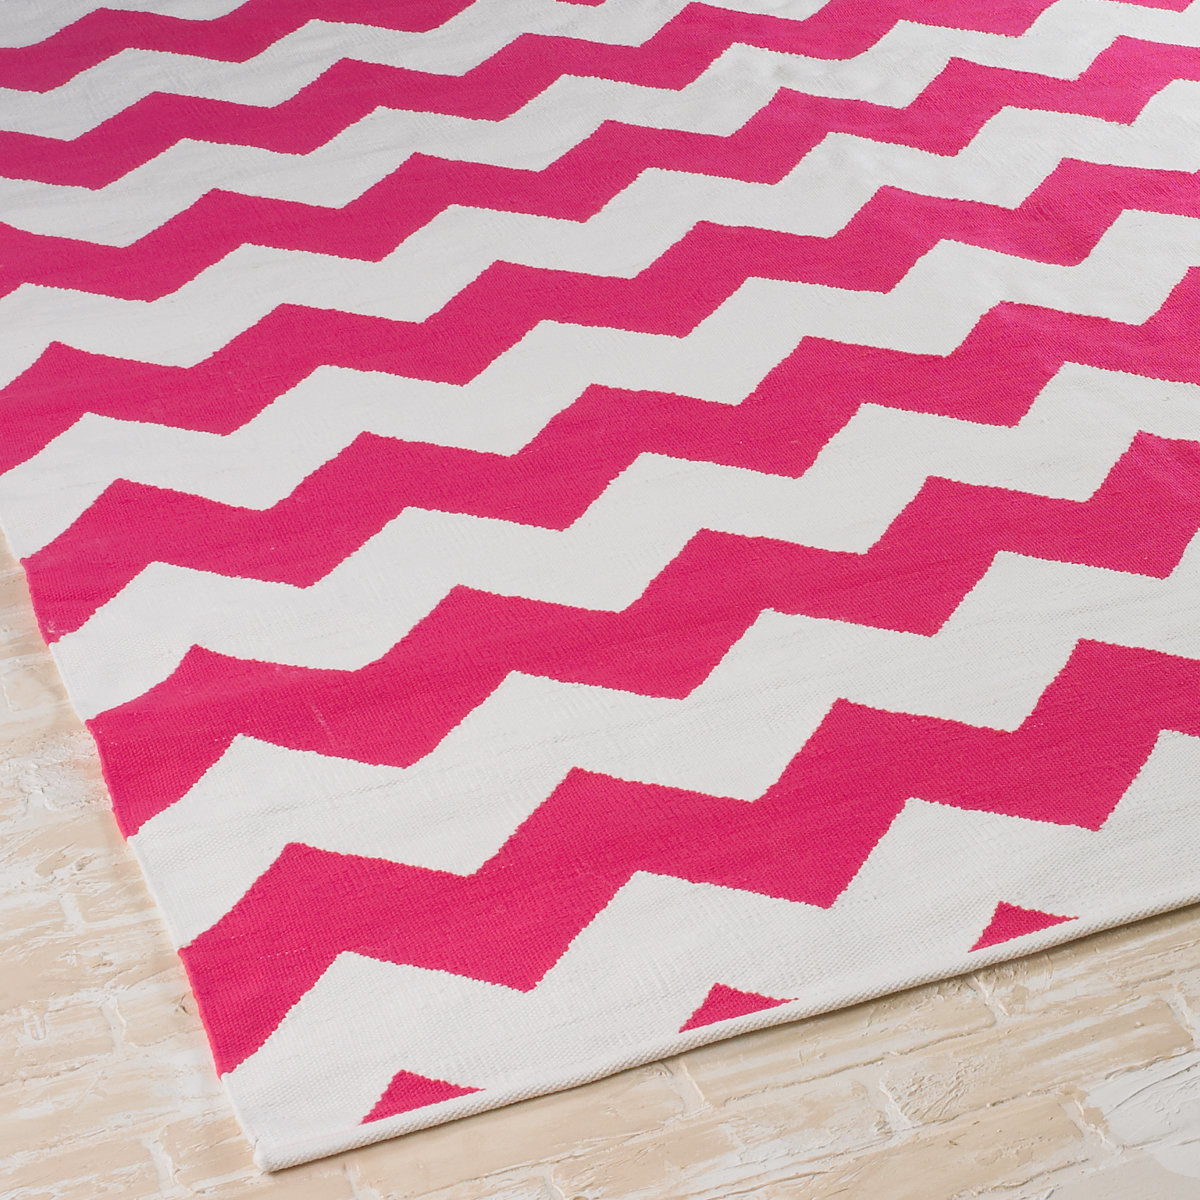 14 Stylish Rugs That Are So Durable Even Your Kids Cant Destroy Them